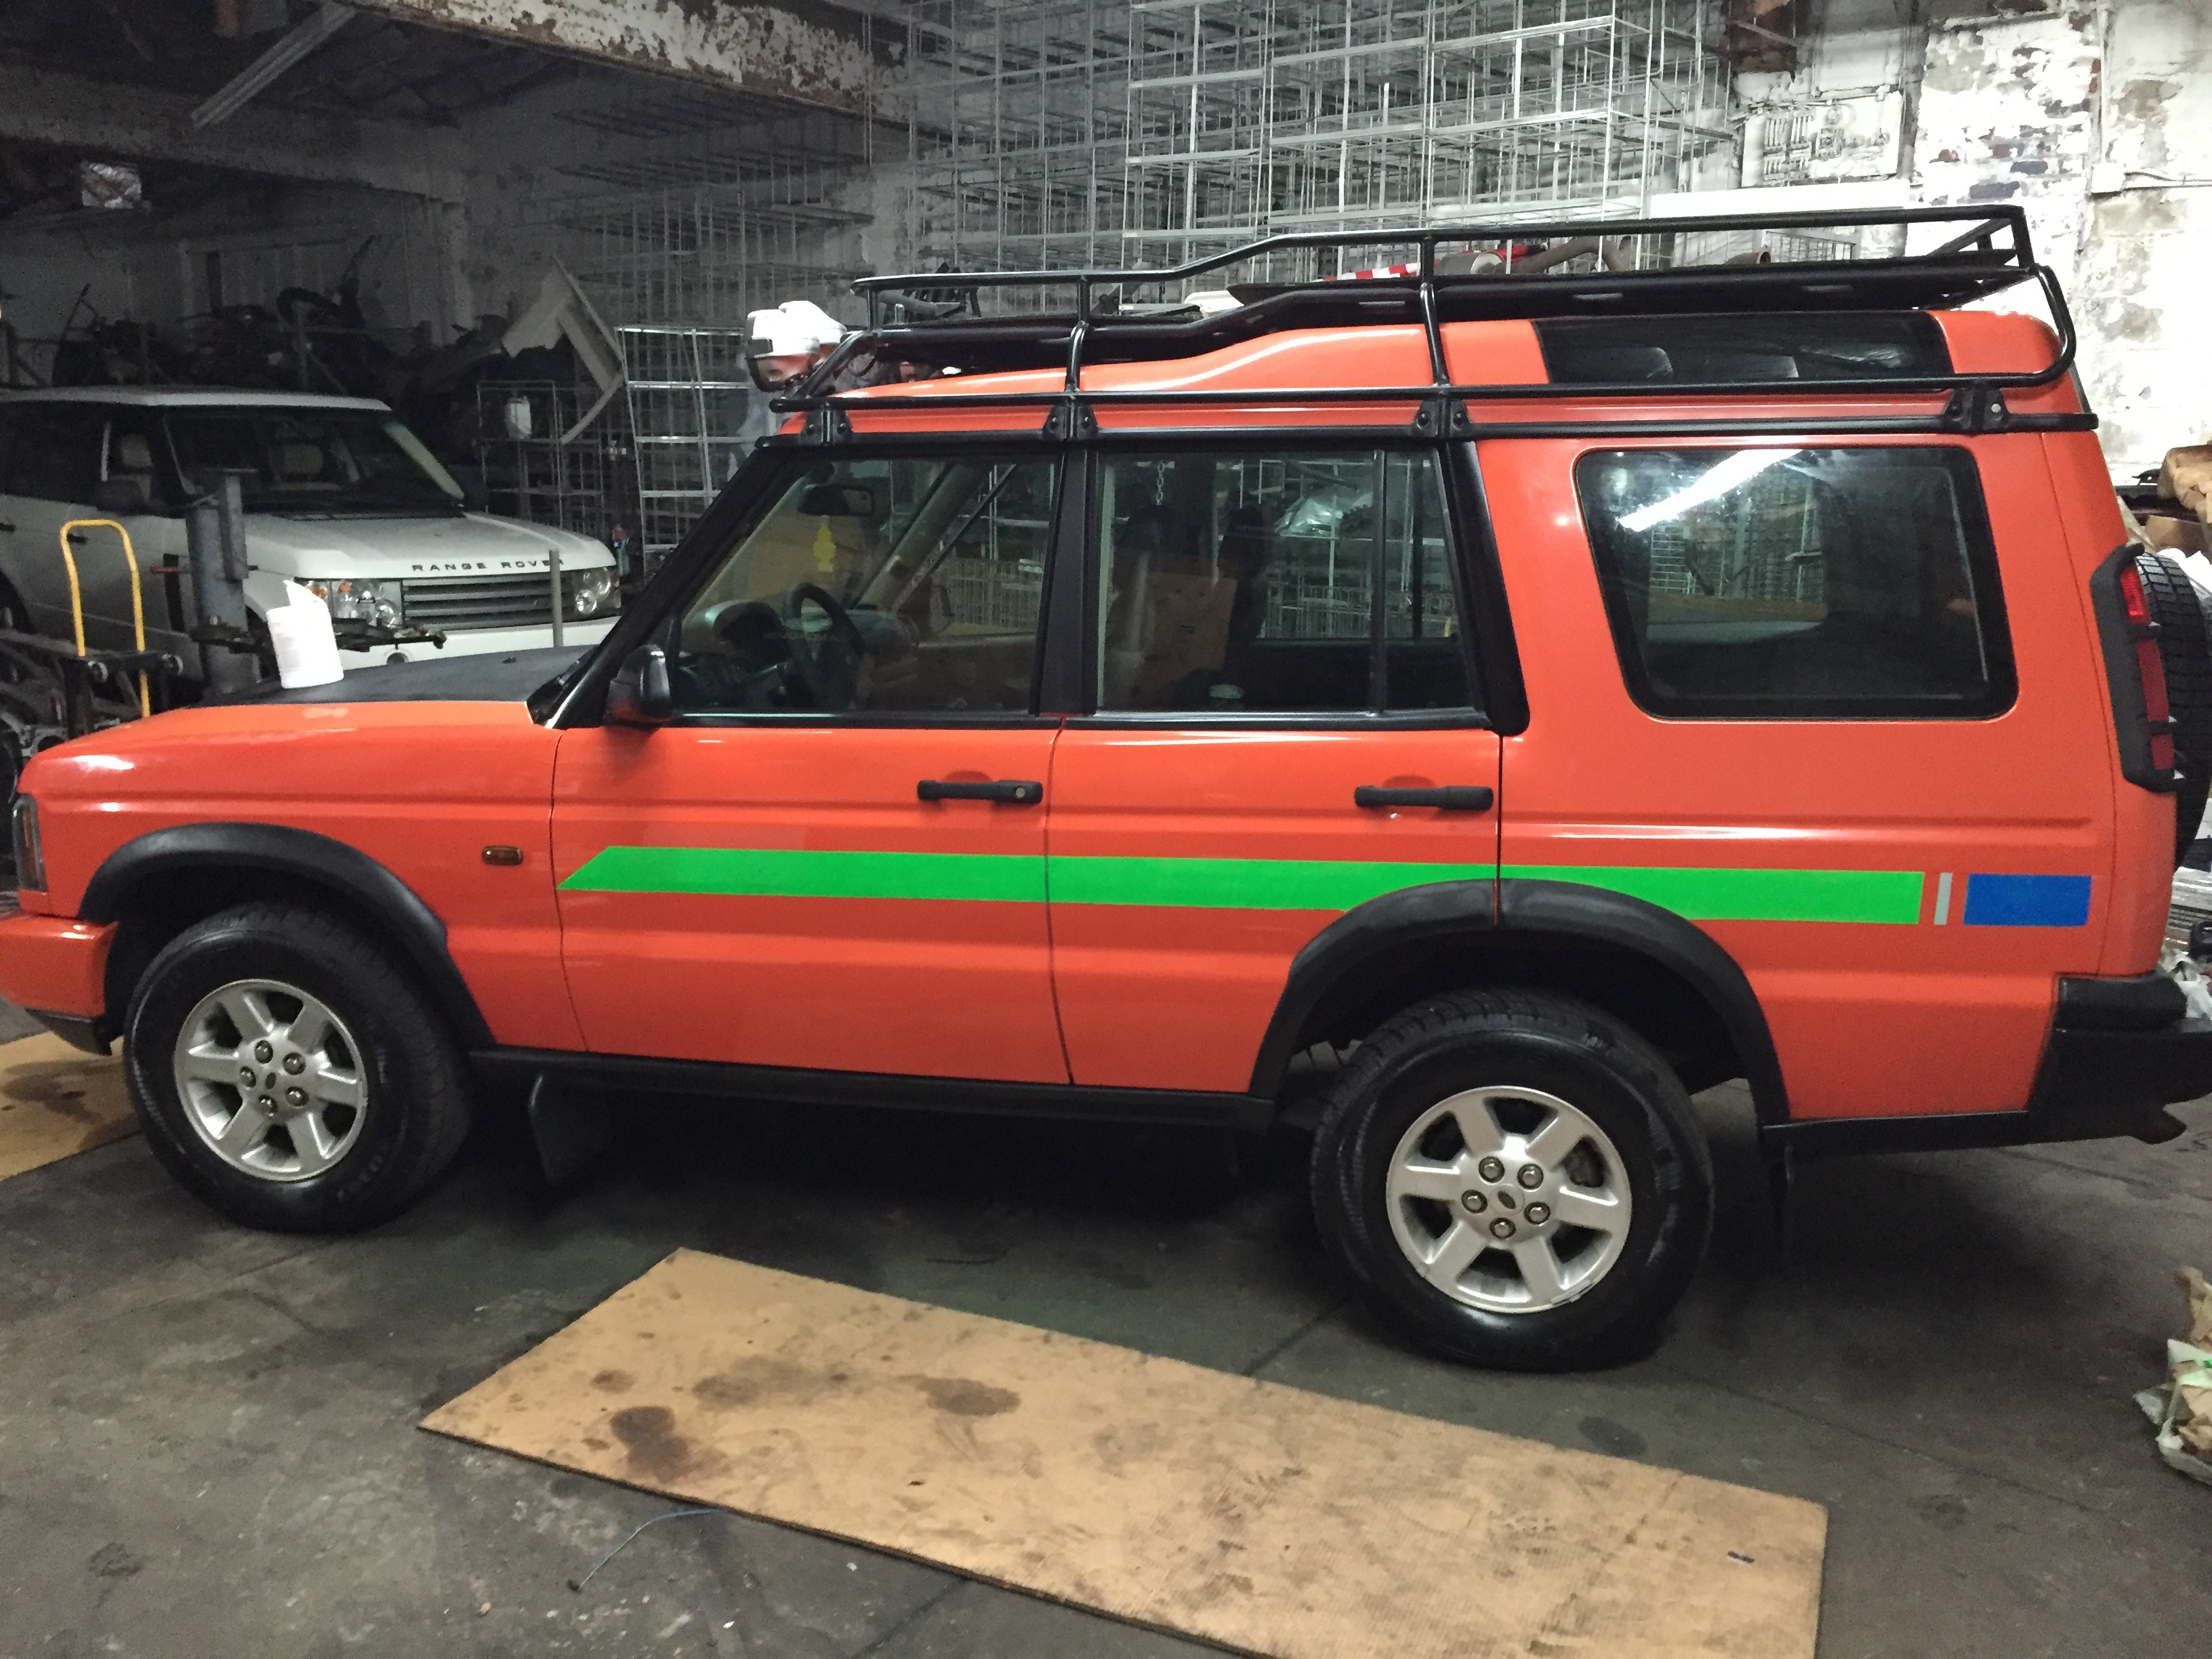 2003 Land Rover Discovery 2 G4 Challenge Edition – Outback Garage